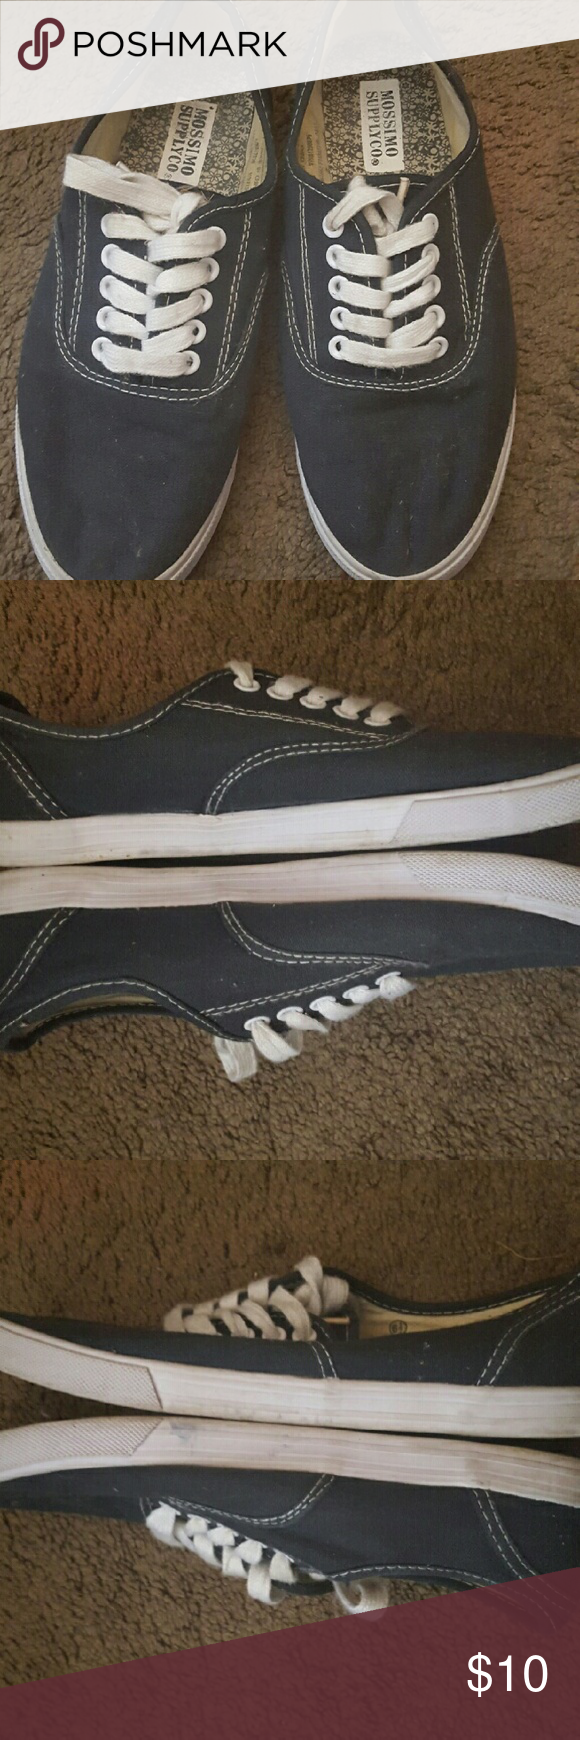 30b687af2df Navy Blue Mossimo Supply Co vans style shoes 6.5